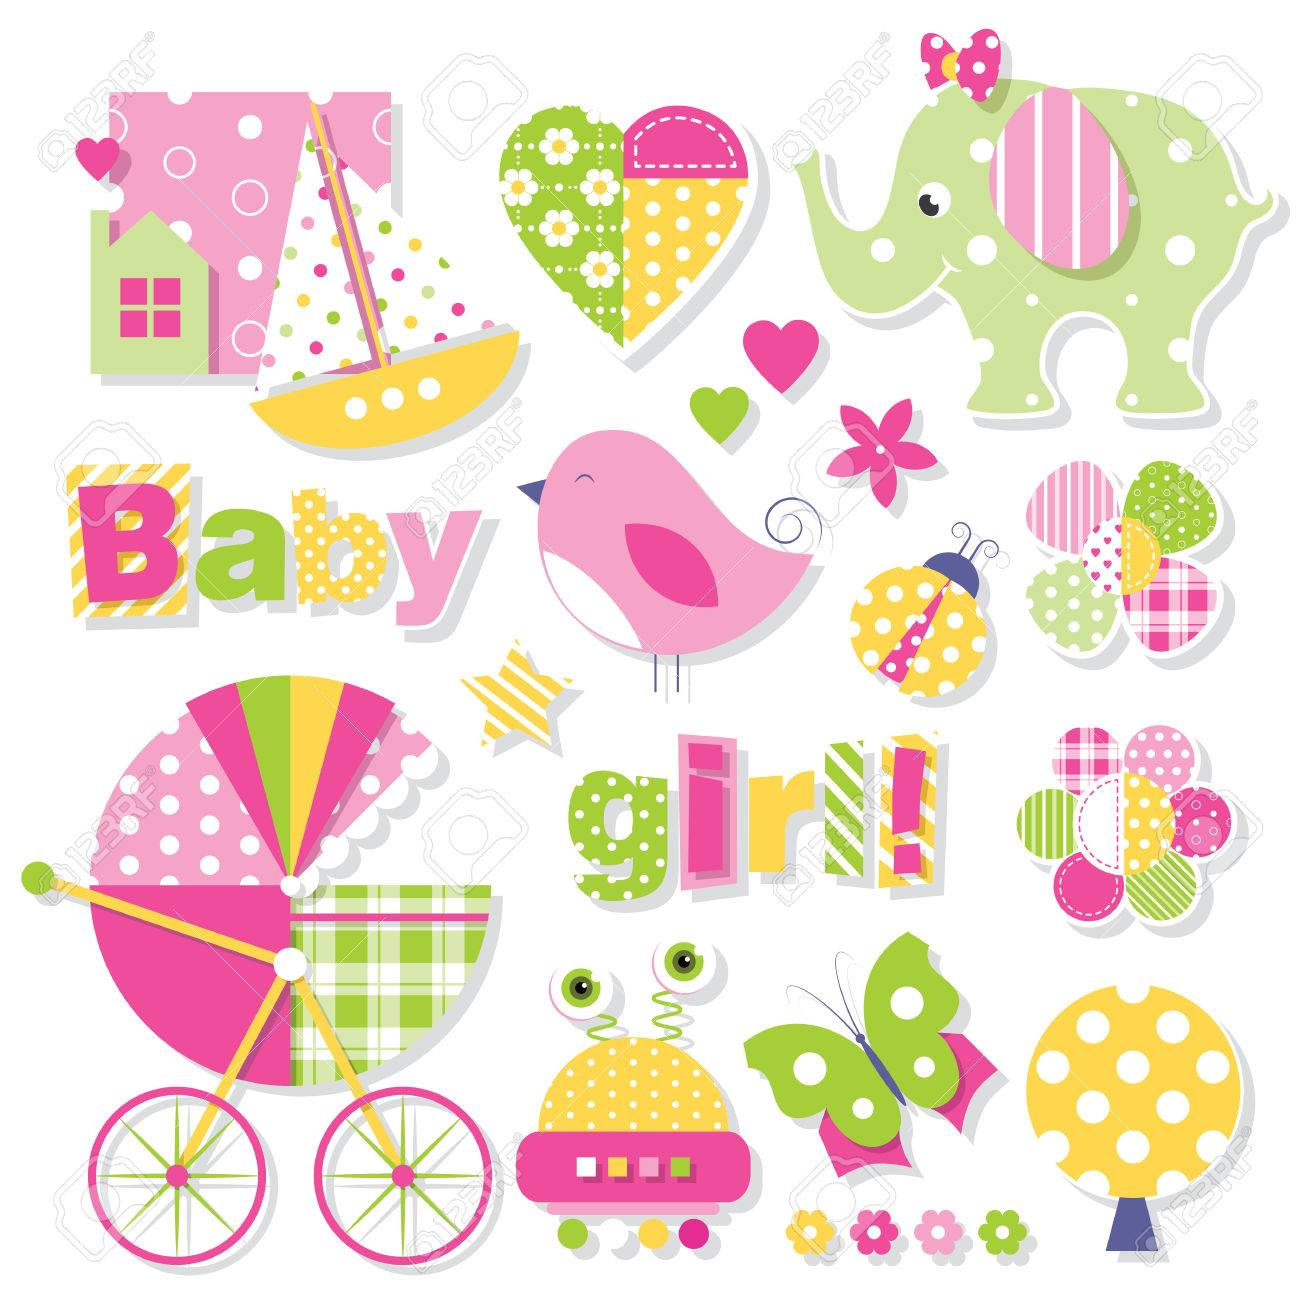 baby girl shower collection - 53317049